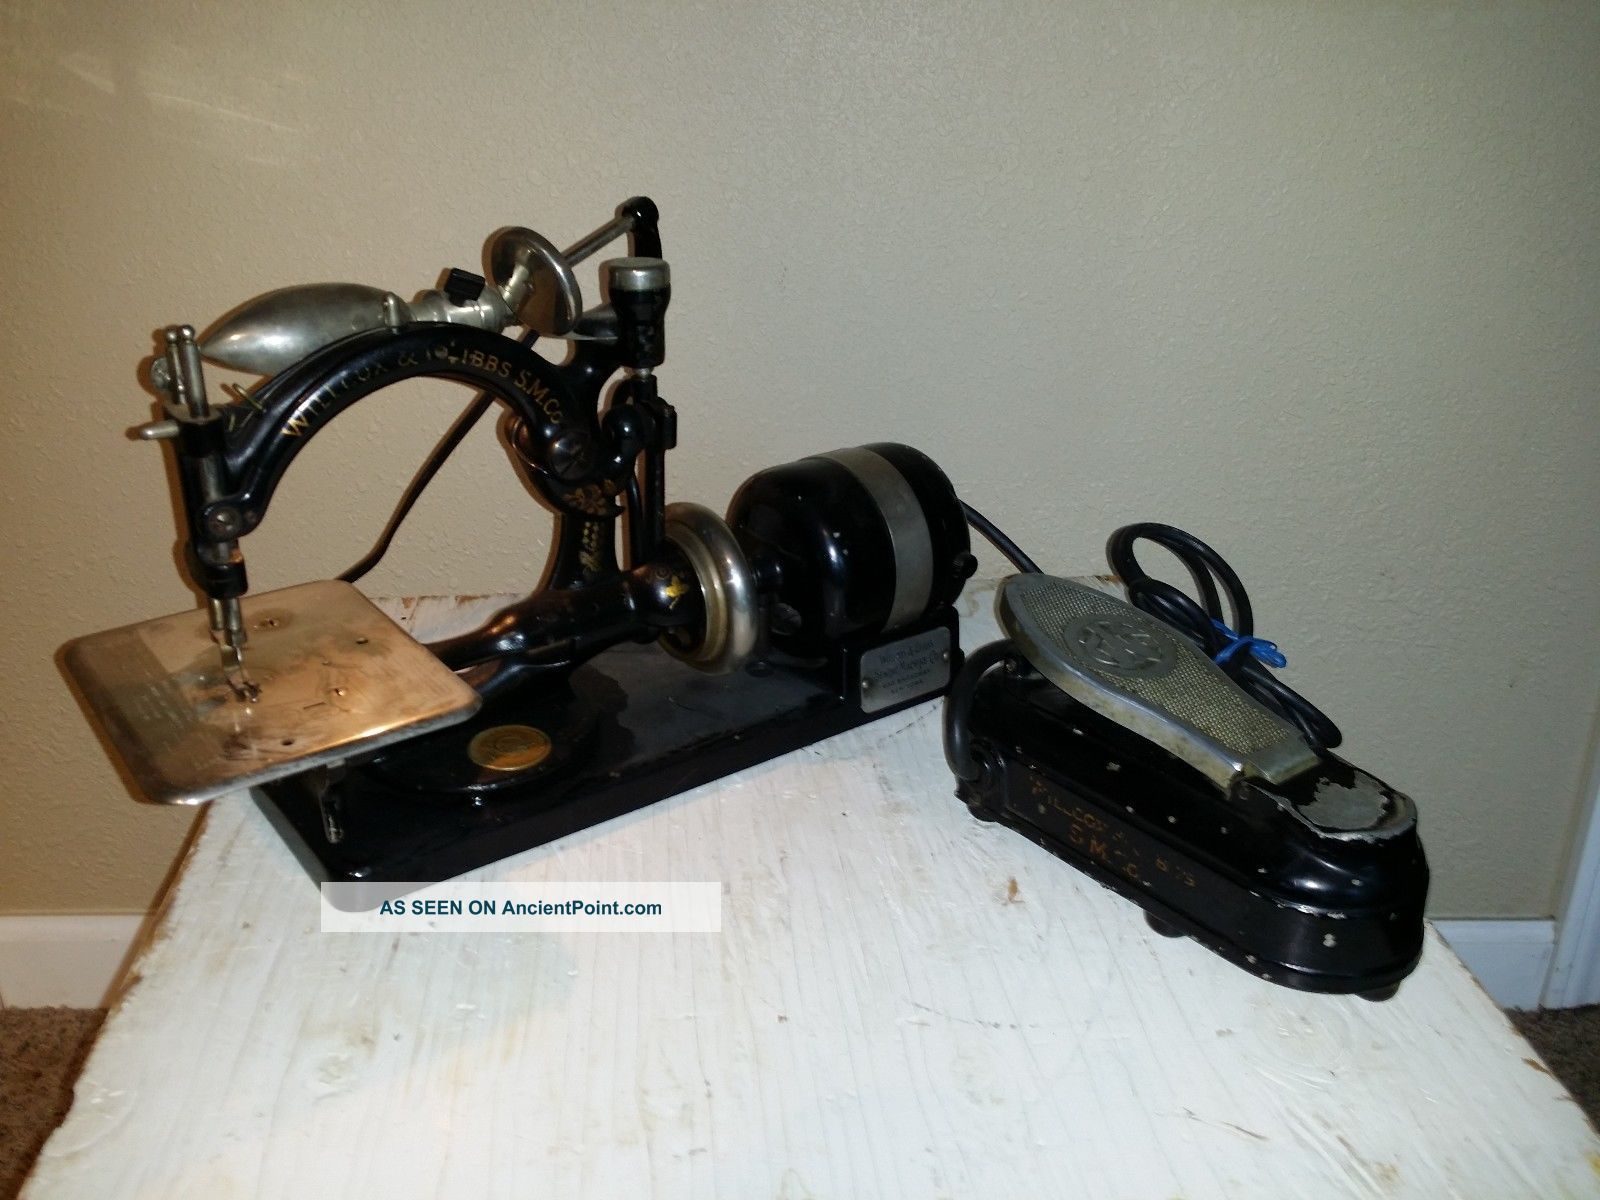 Antique Willcox & Gibbs Automatic Sewing Machine W Foot Pedal And Light Sewing Machines photo